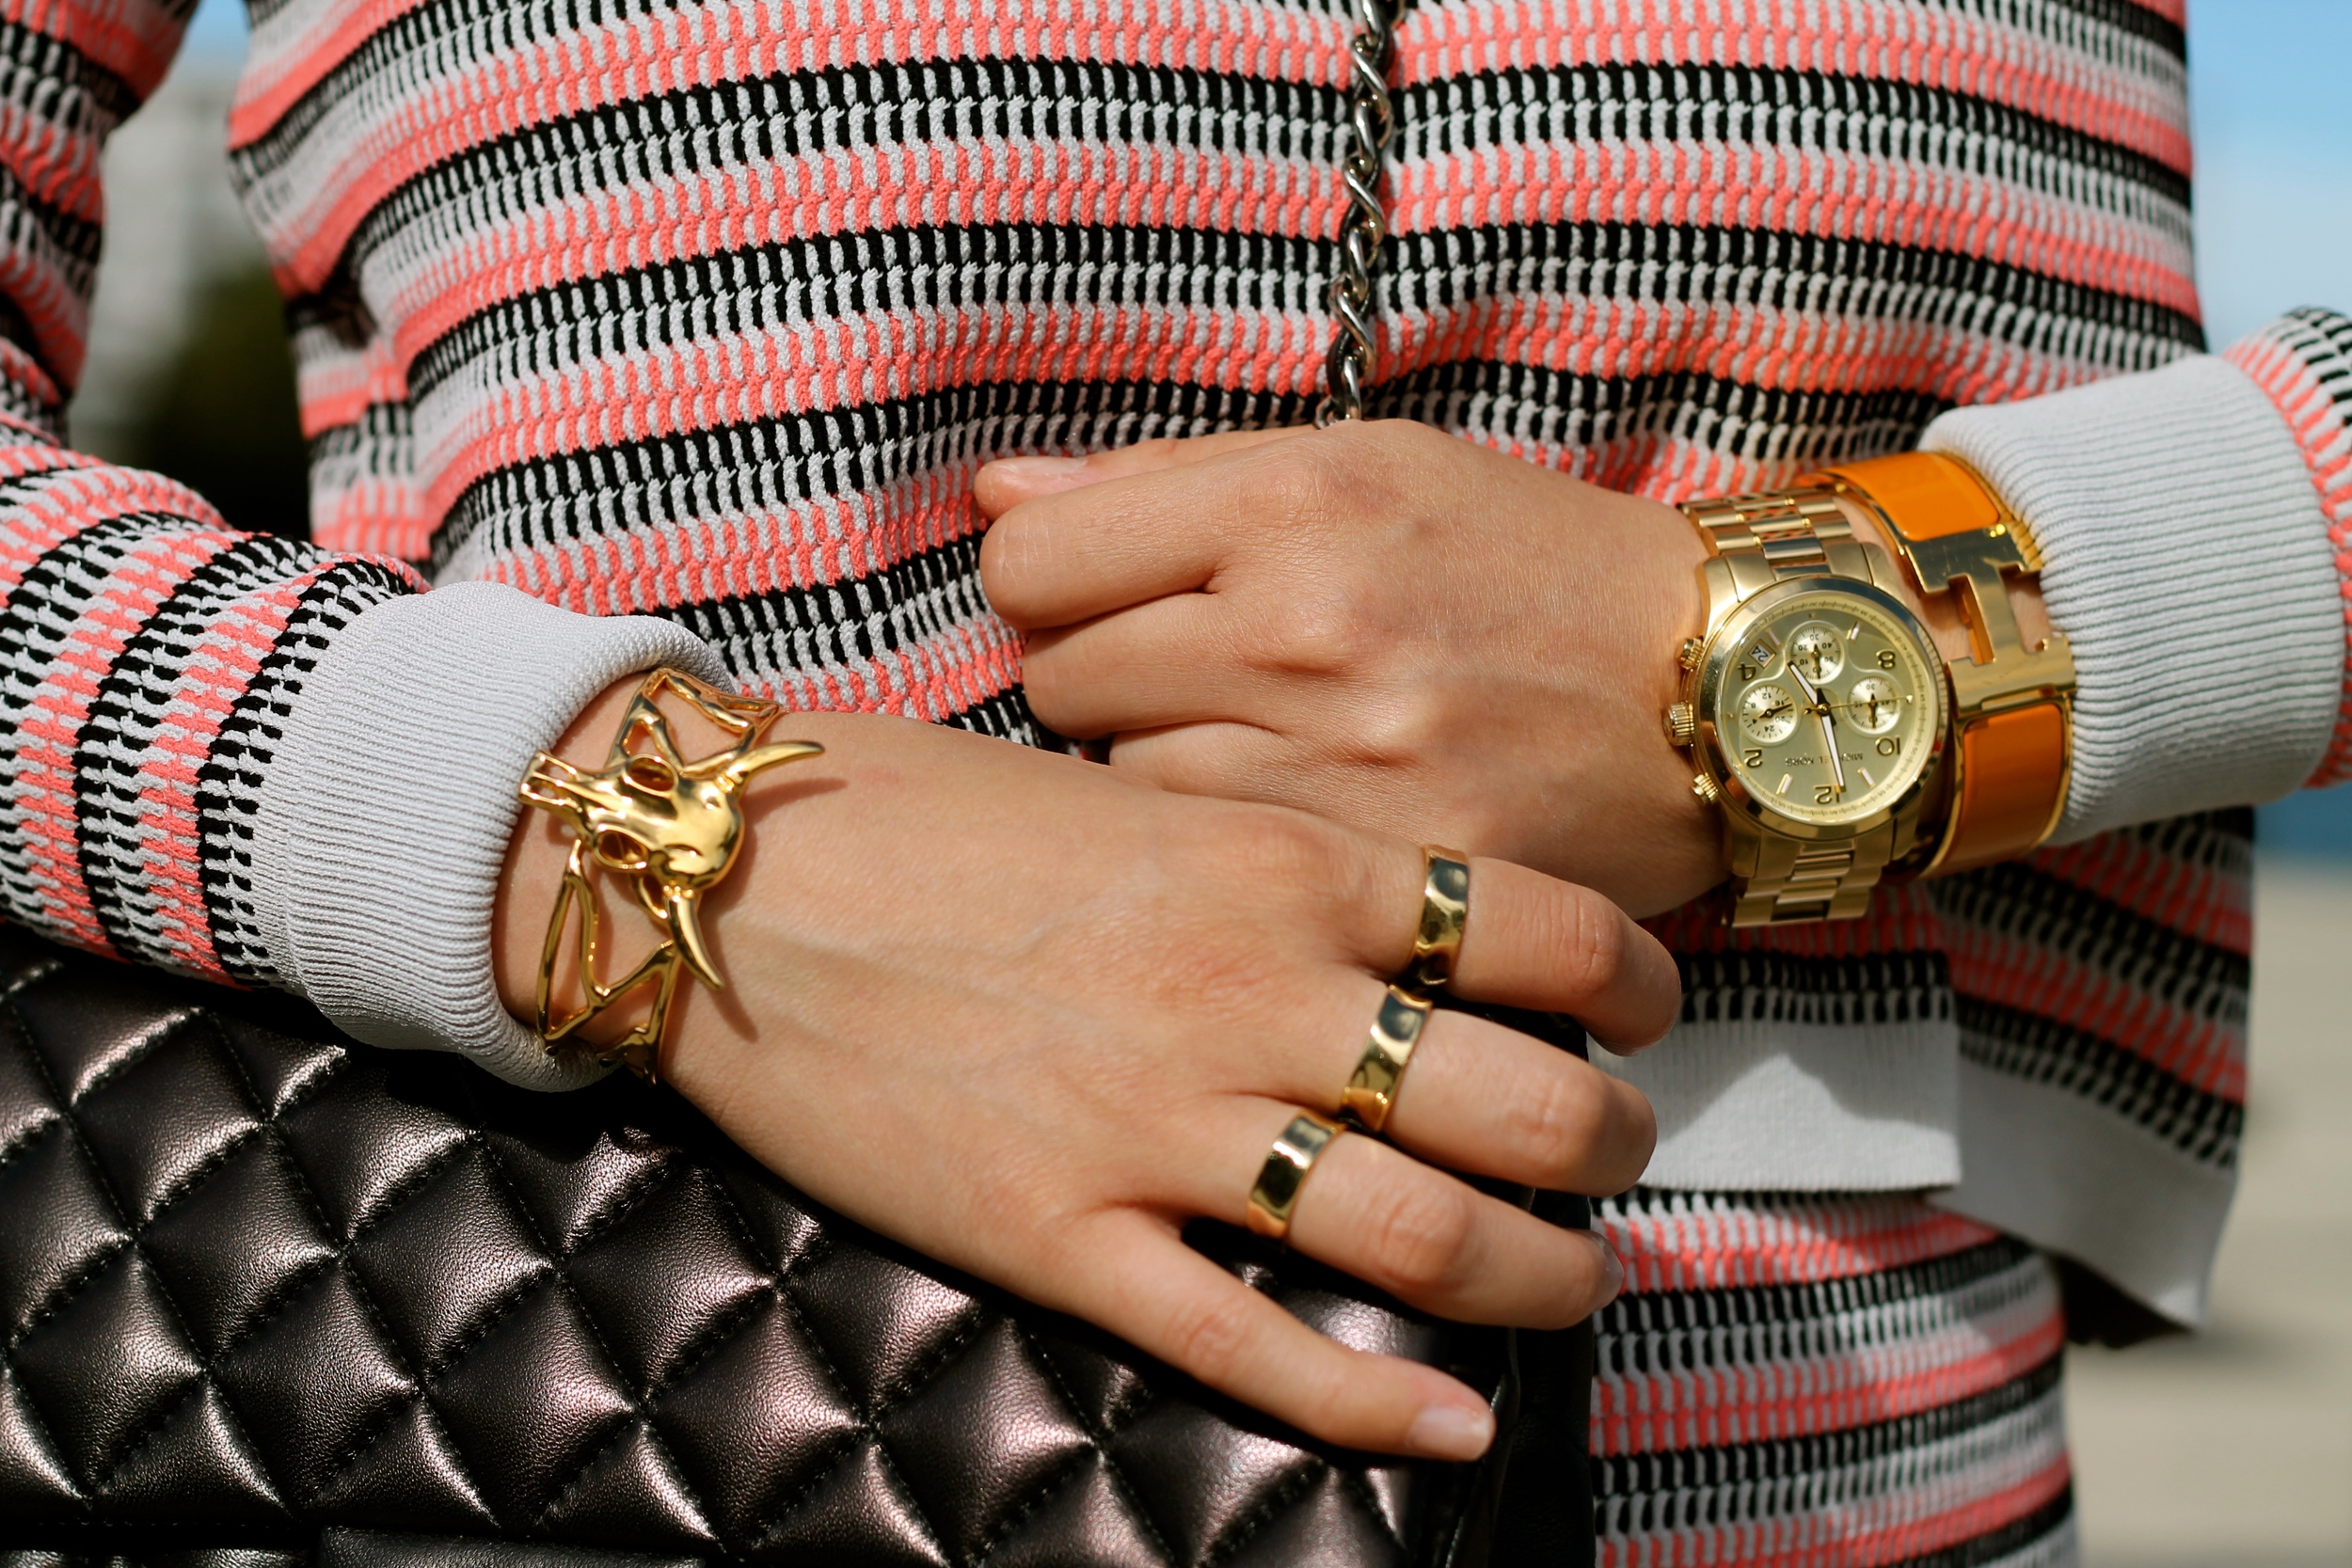 Svelte Metals and Hermes bracelet, Michael Kors watch, my own rings